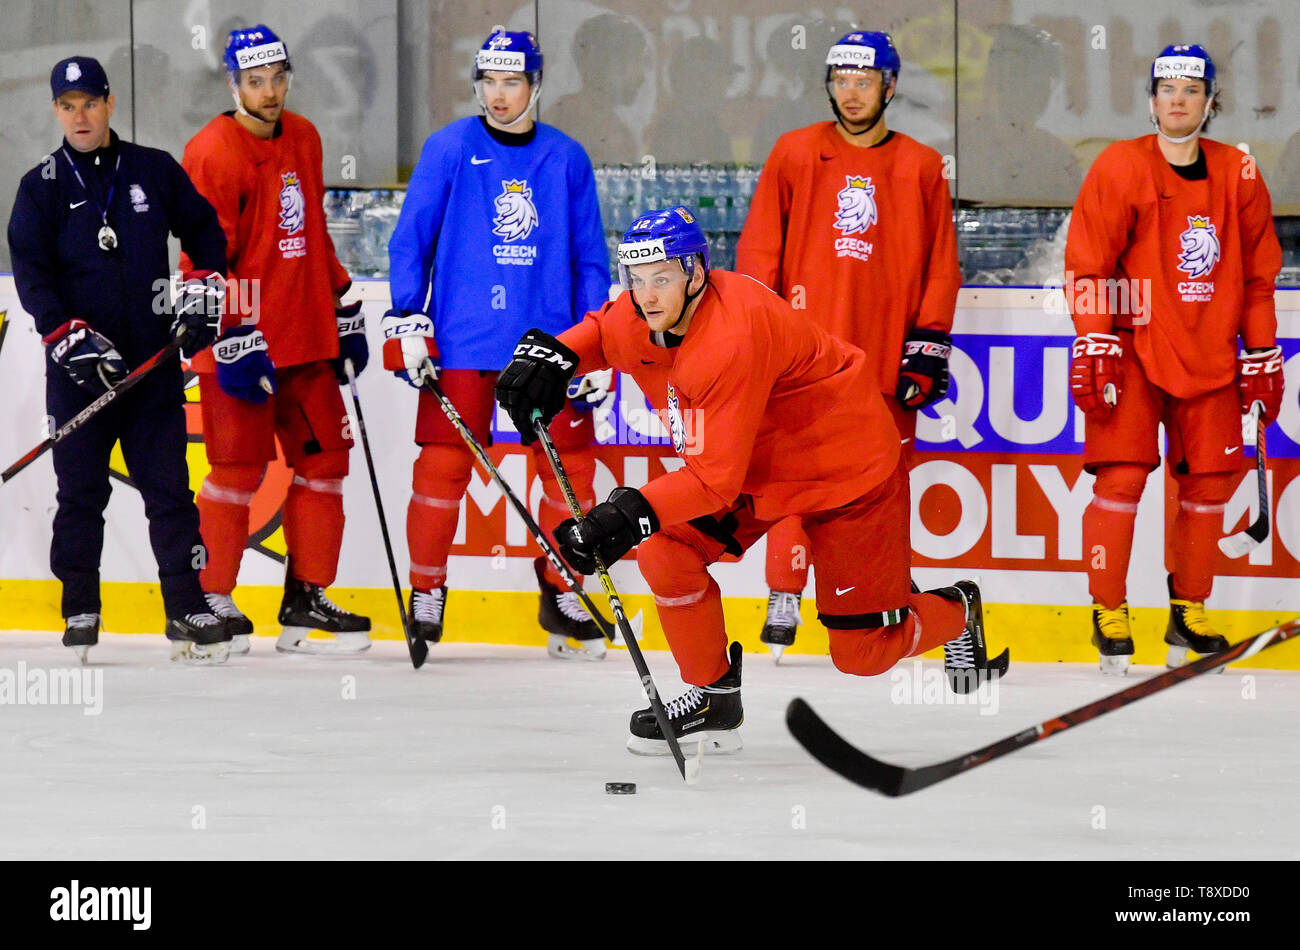 Bratislava, Slovakia. 15th May, 2019. Czech player Radek Faksa (center) attends a training session of the Czech national team within the 2019 IIHF World Championship in Bratislava, Slovakia, on May 15, 2019, one day prior to the match against Latvia. Credit: Vit Simanek/CTK Photo/Alamy Live News Stock Photo